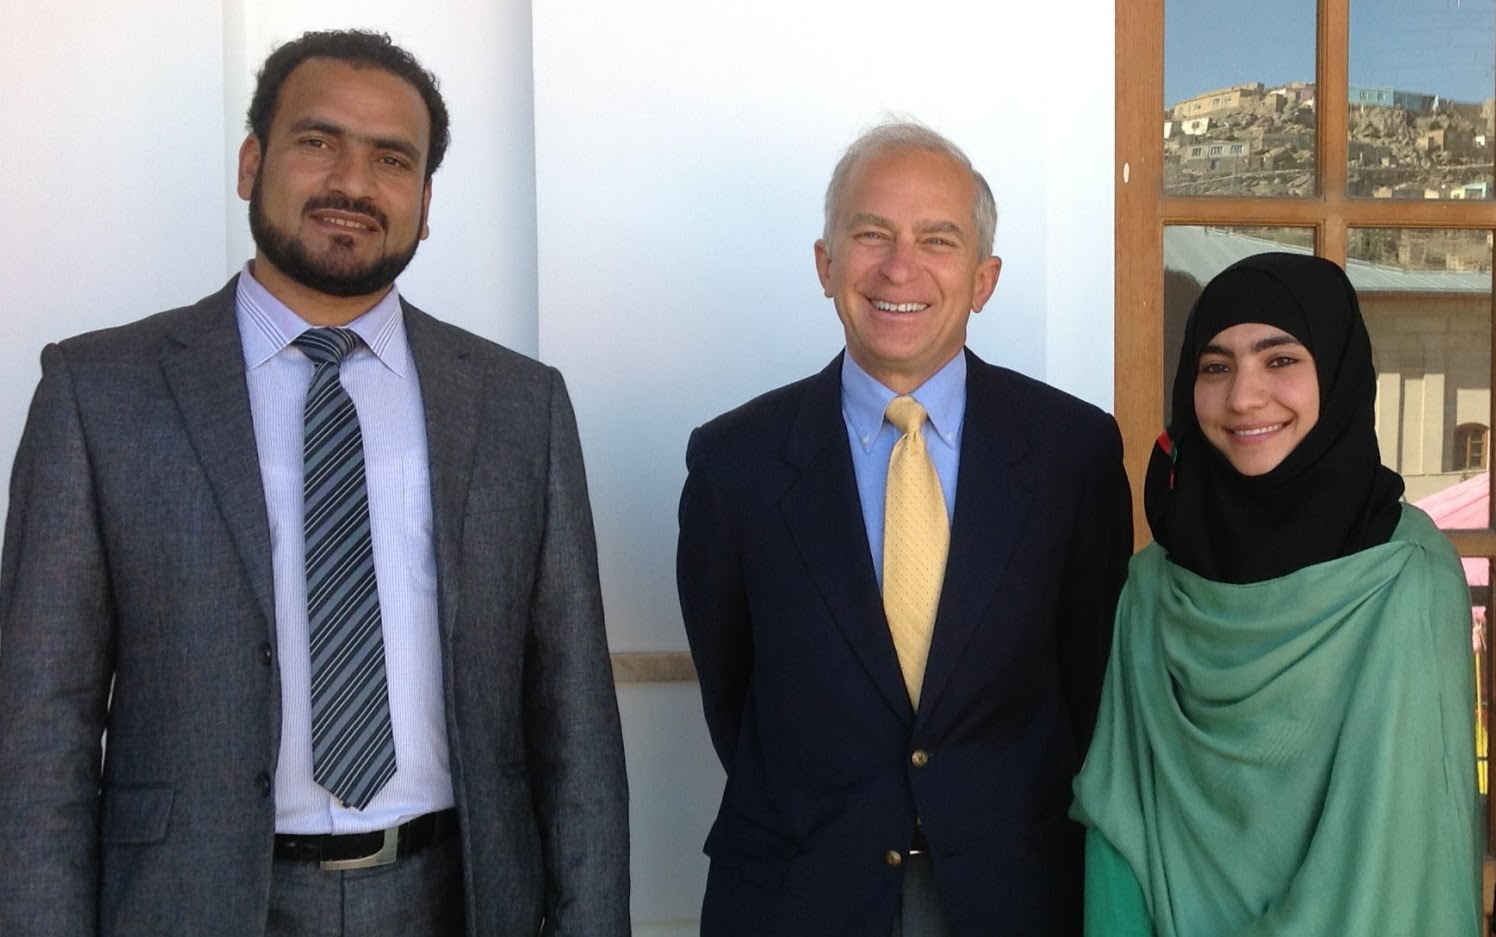 In Afghanistan with staff from NDI